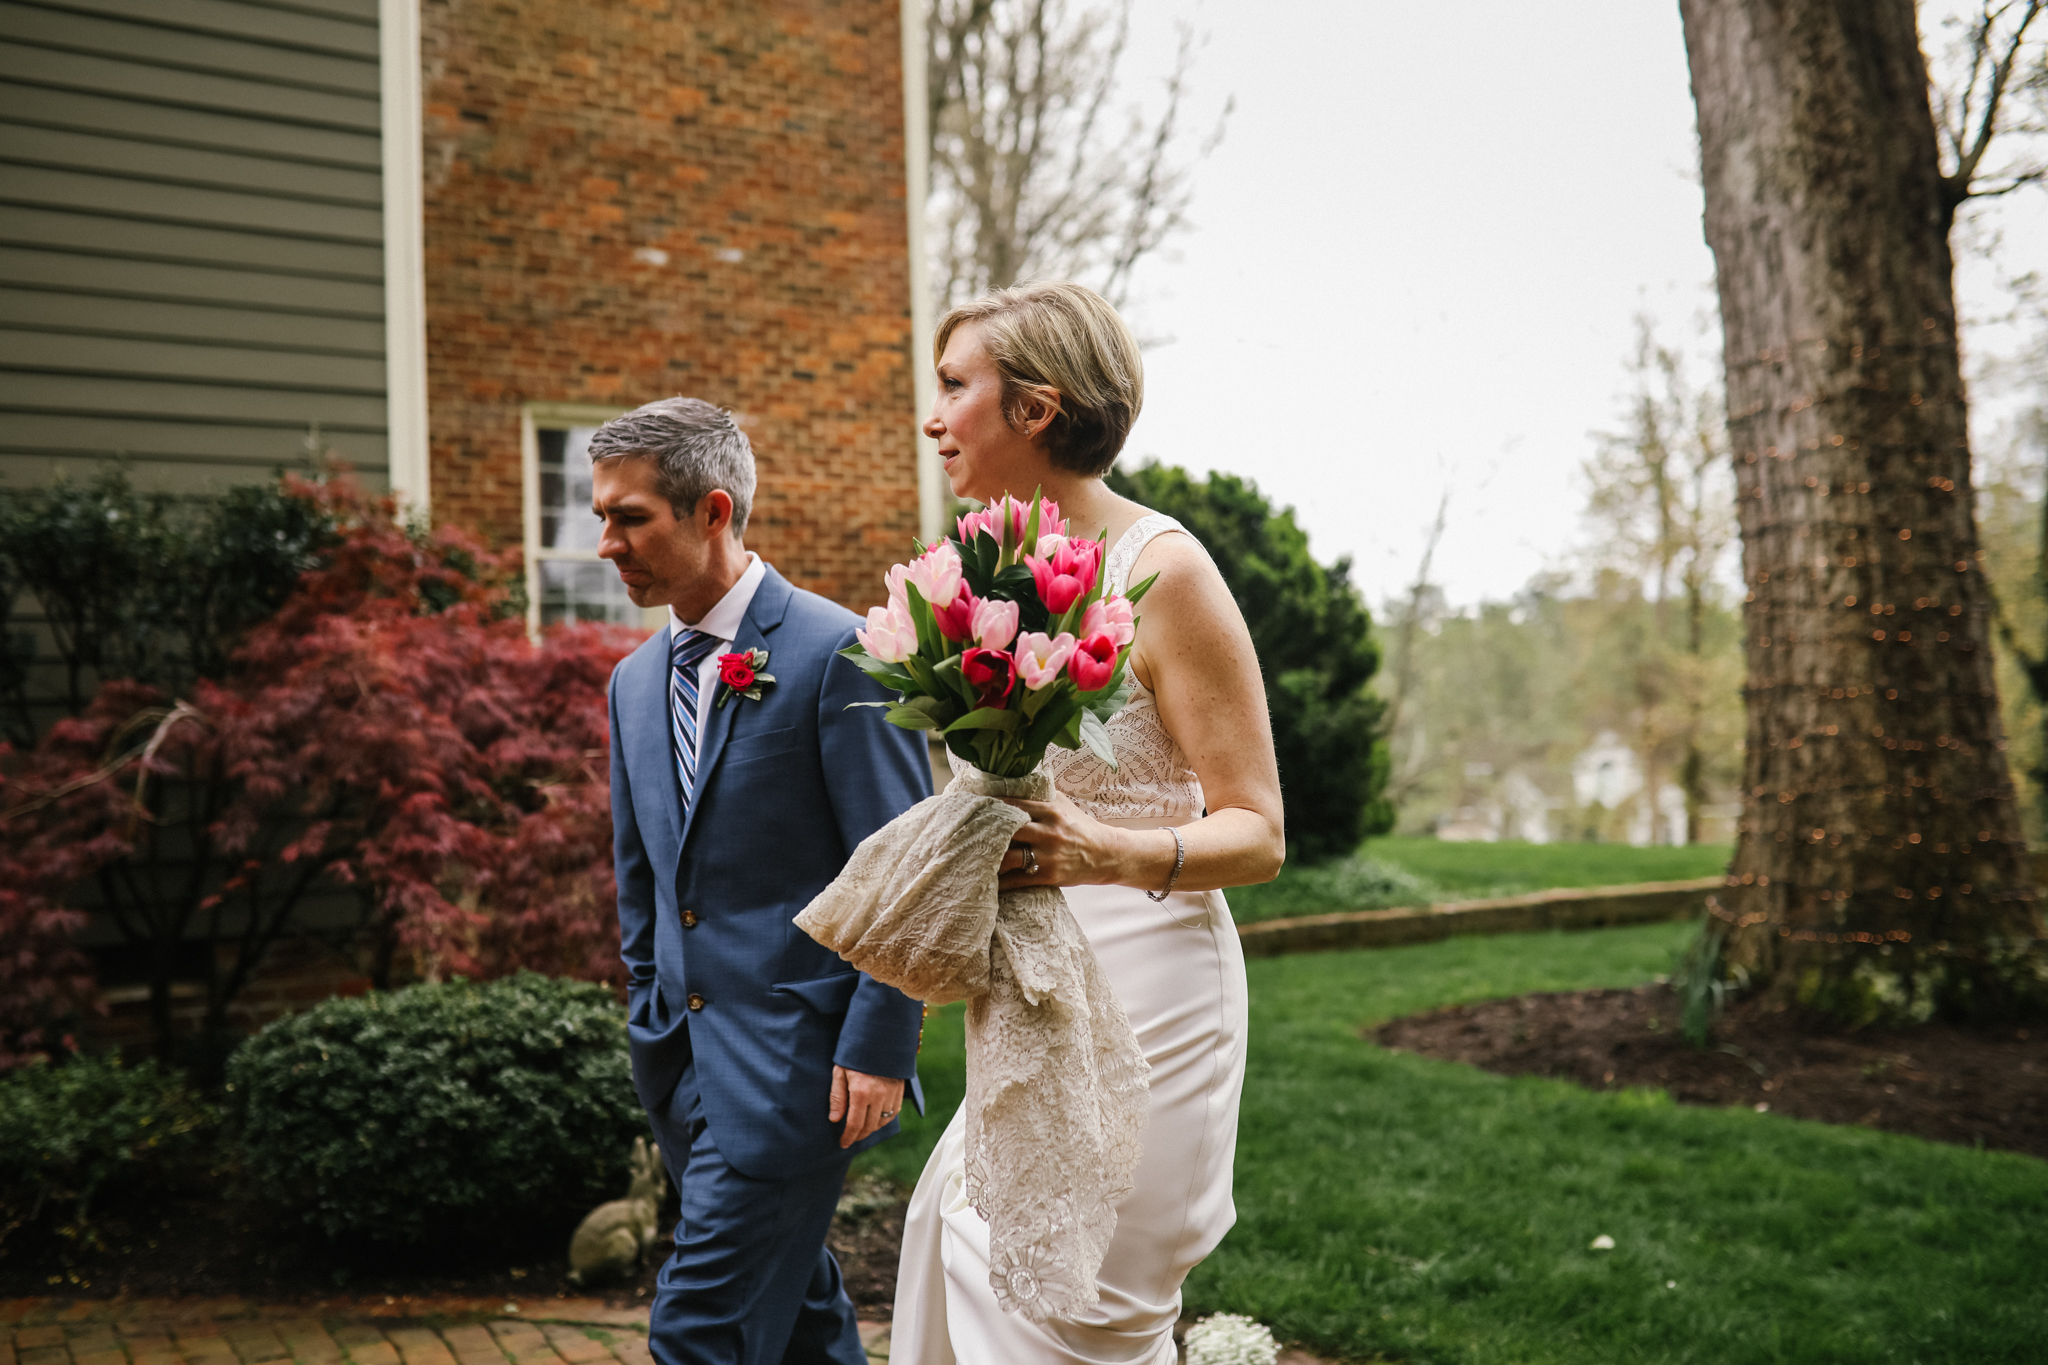 cook_wedding_richmond_virginia_rebecca_burt_photography-62.jpg